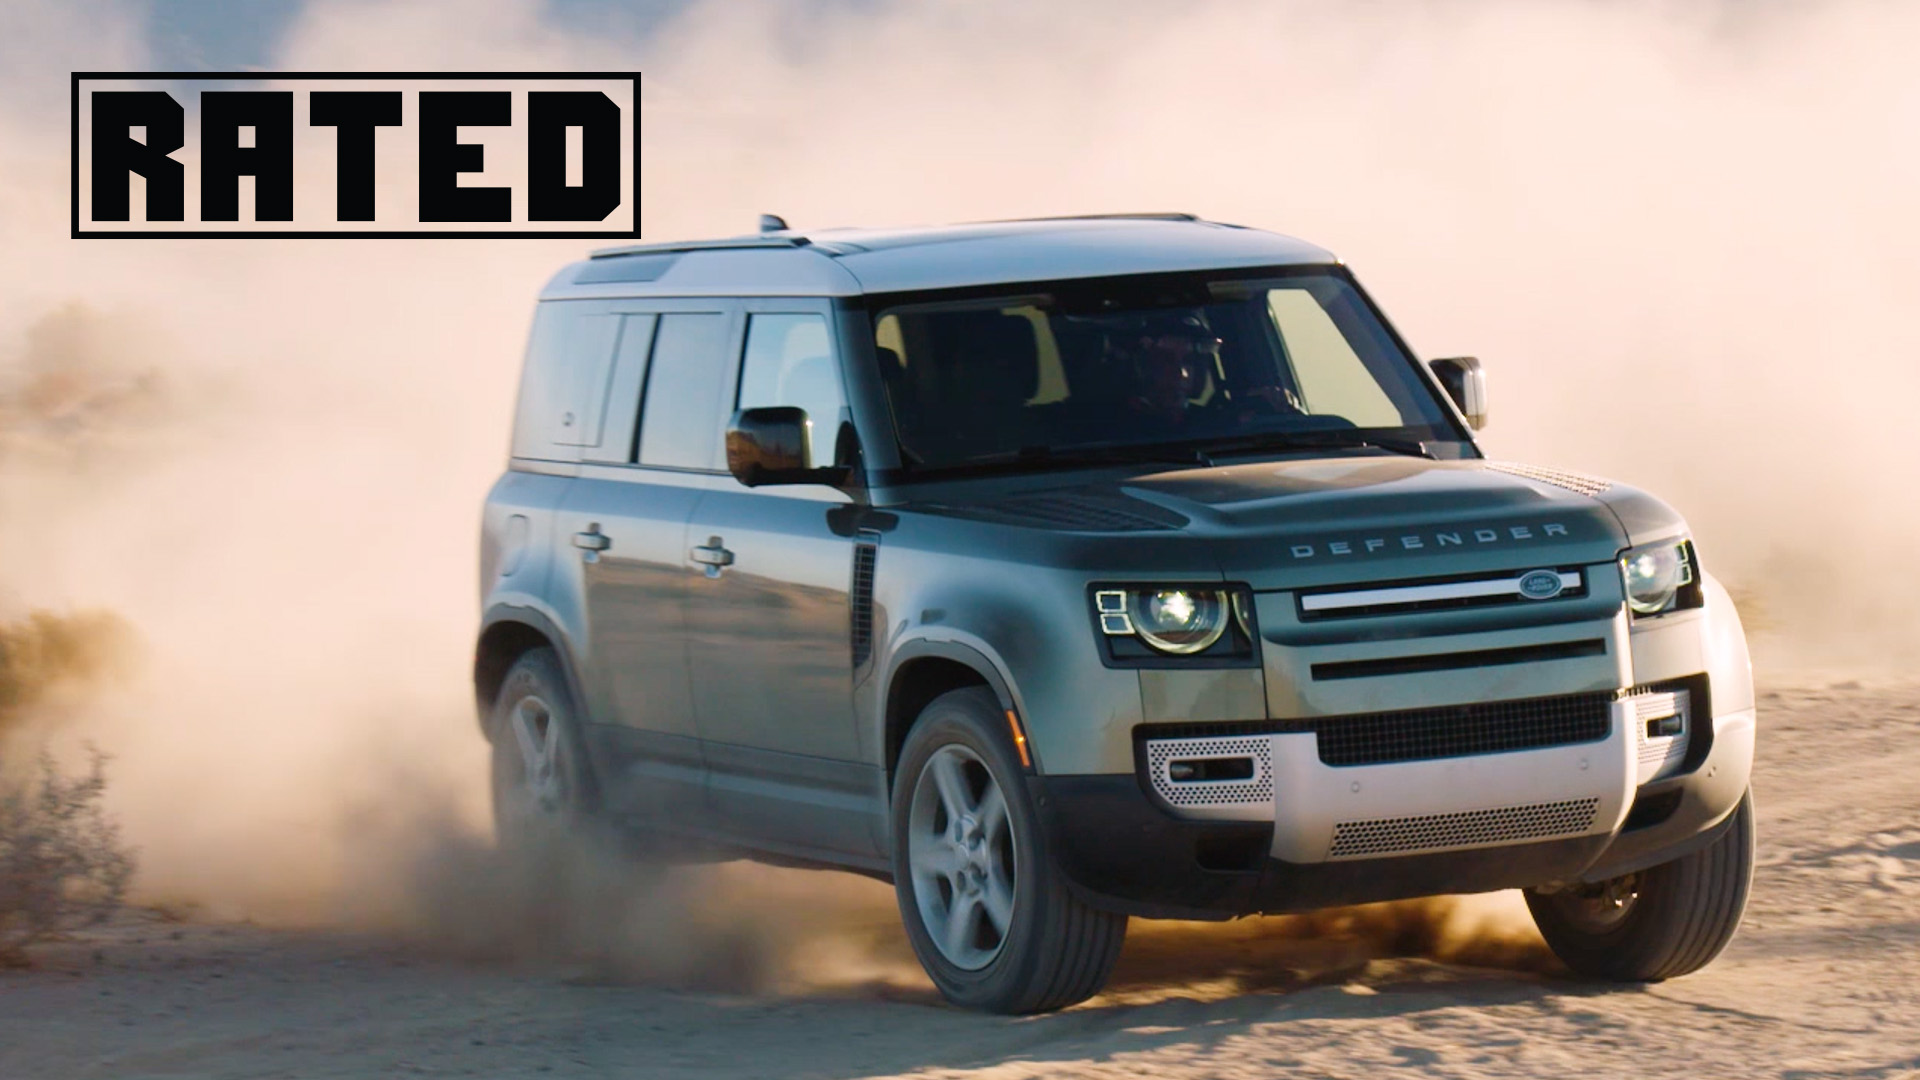 Rated Land Rover Defender